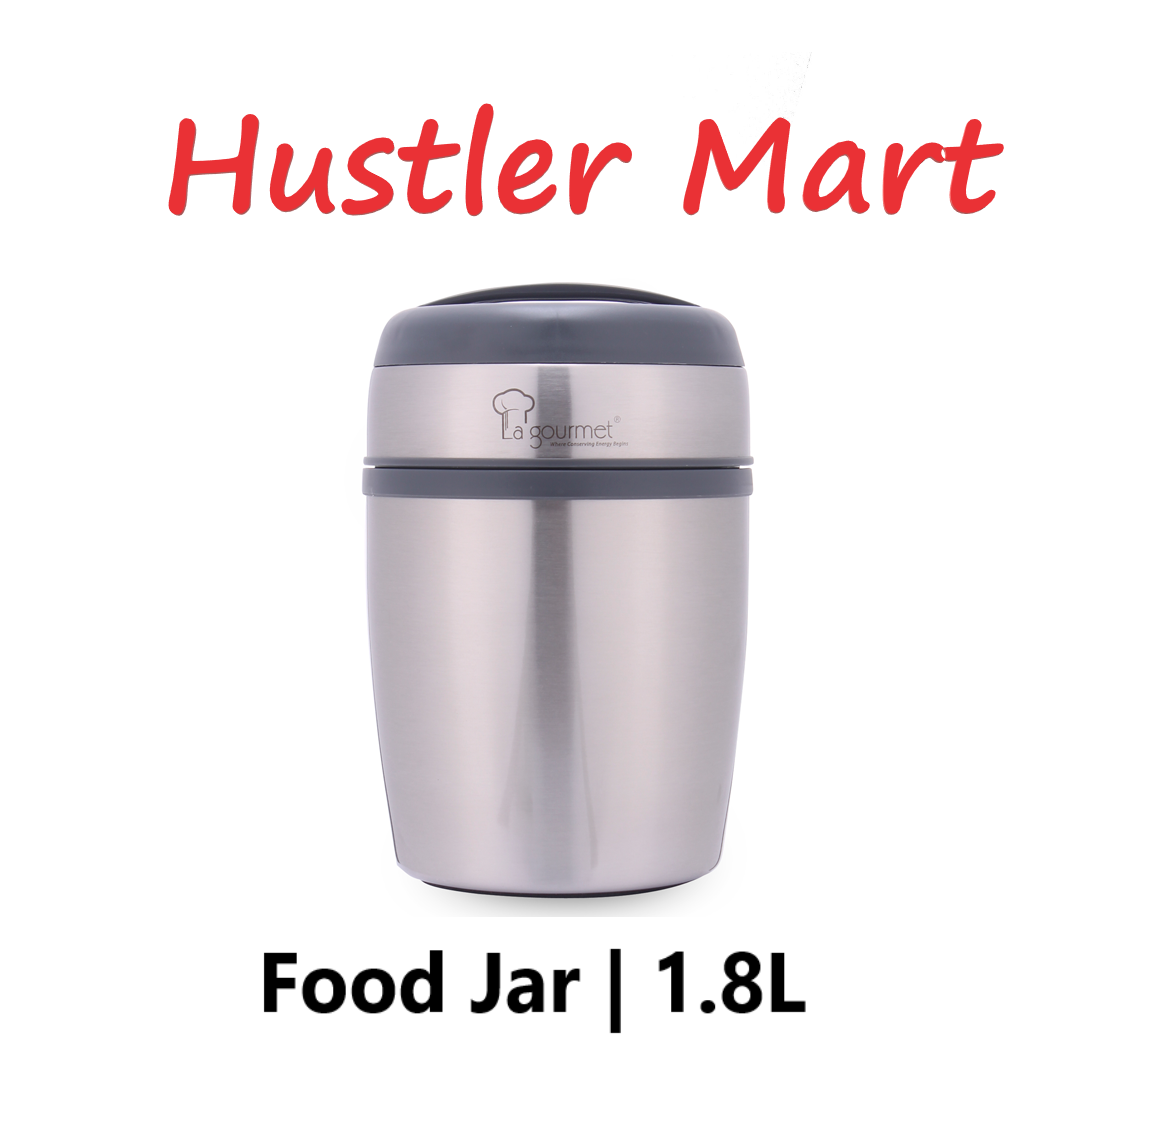 La Gourmet Sakura 1.8L Thermal Food Jar with Pressure Release